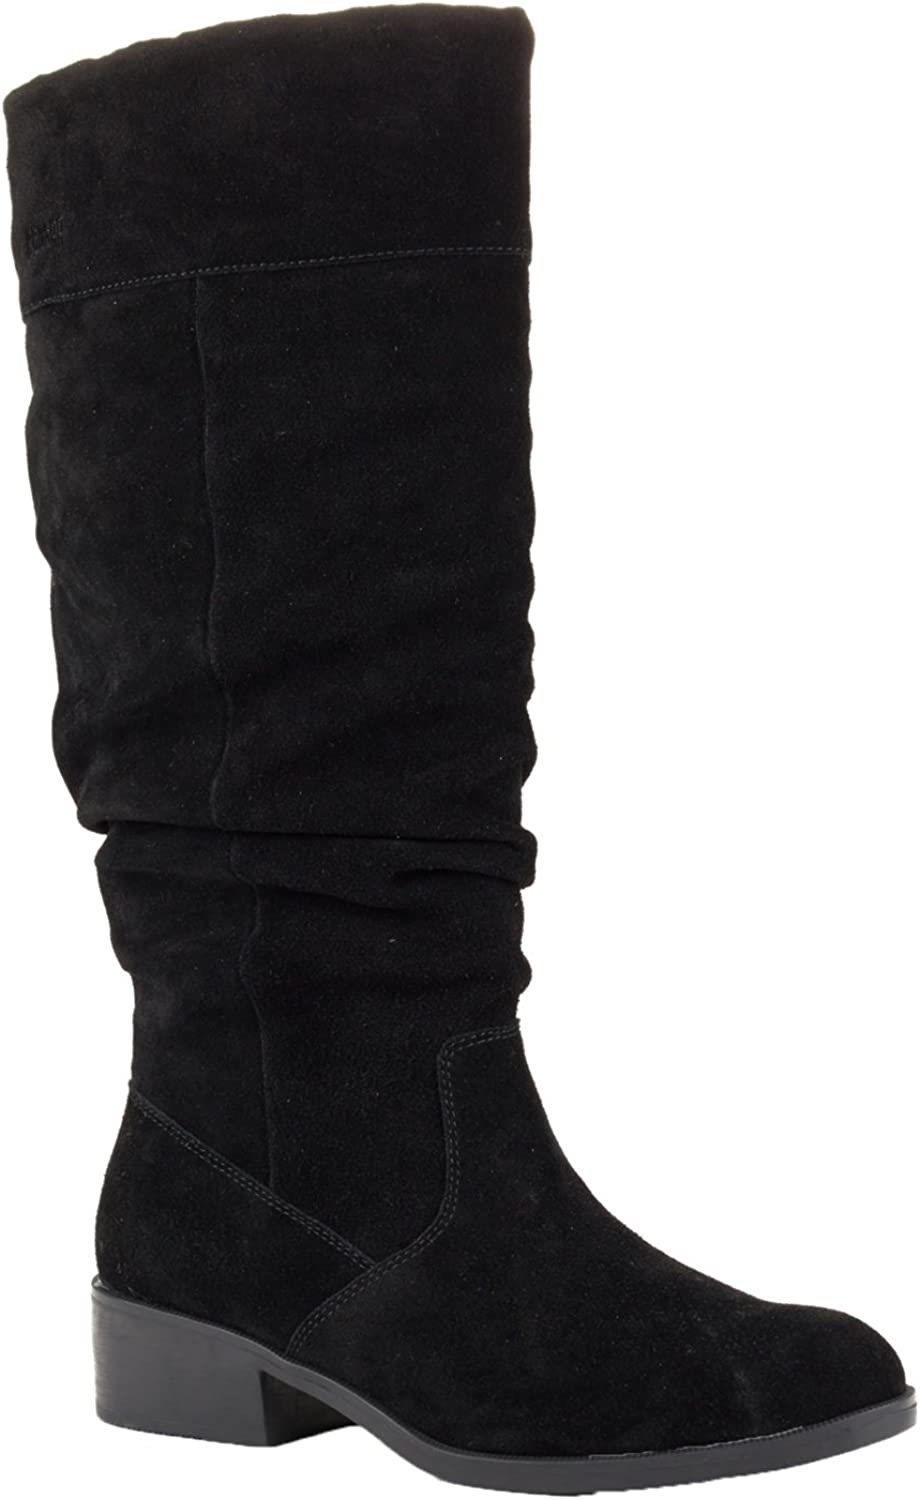 Cougar Women's Carla Tall Dress Boot (11 M US, Black Suede)